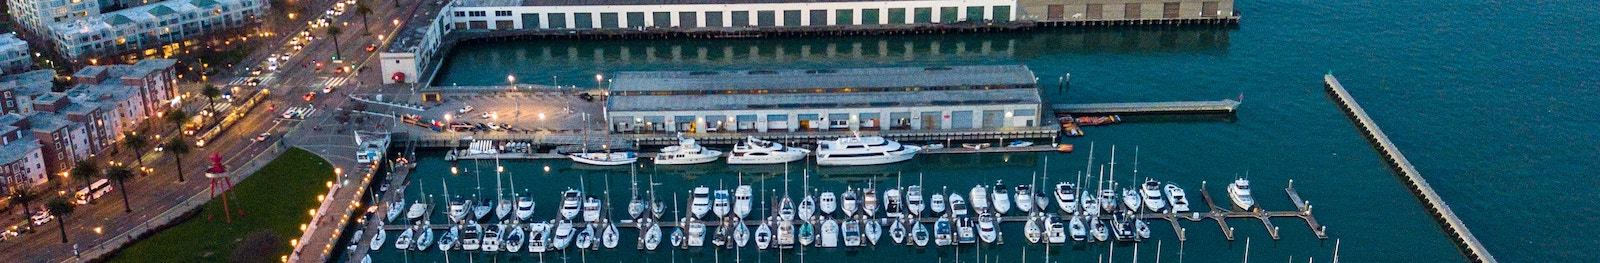 Marina and a number of yachts